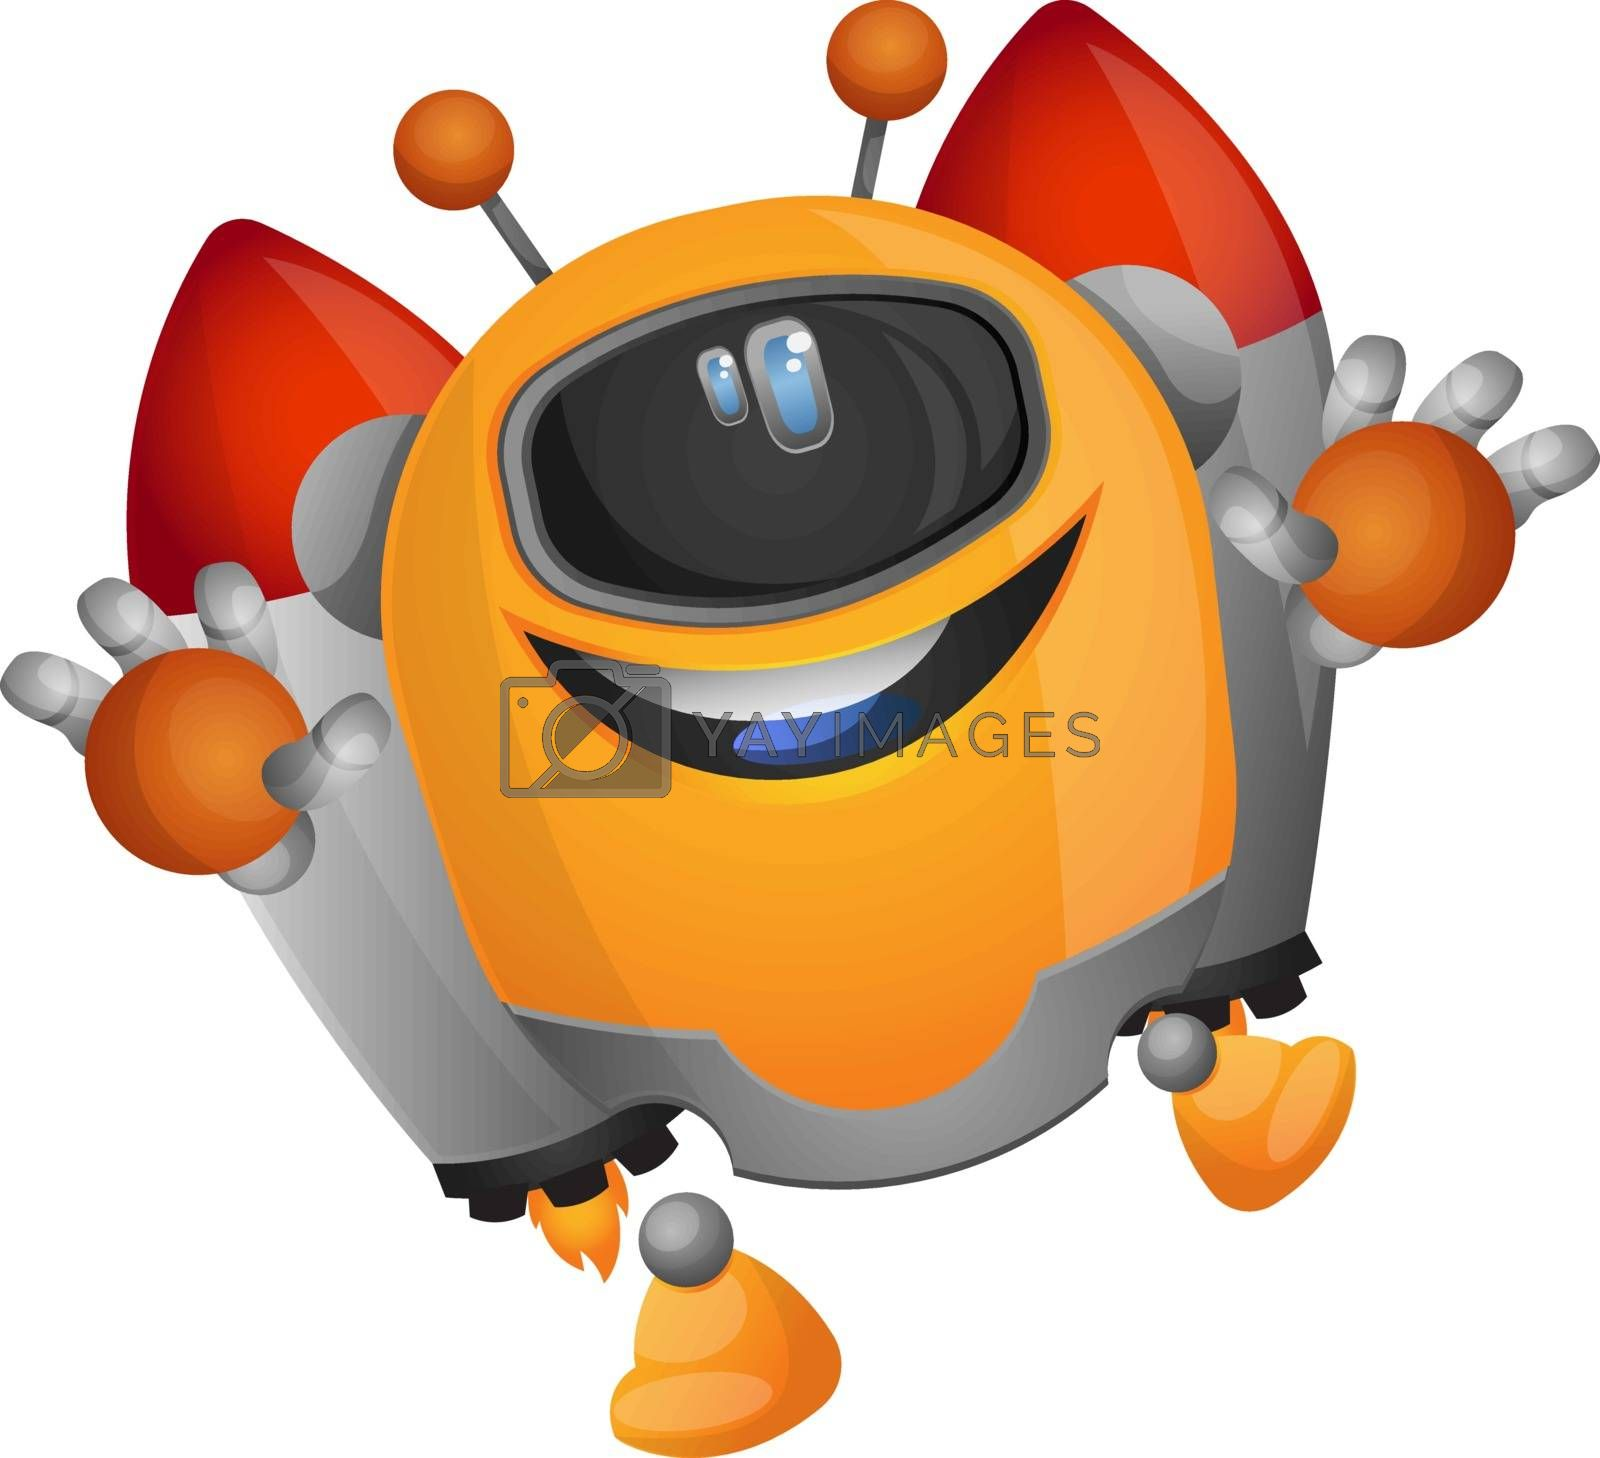 Royalty free image of Cartoon robot on a rocket propulsion illustration vector on whit by Morphart